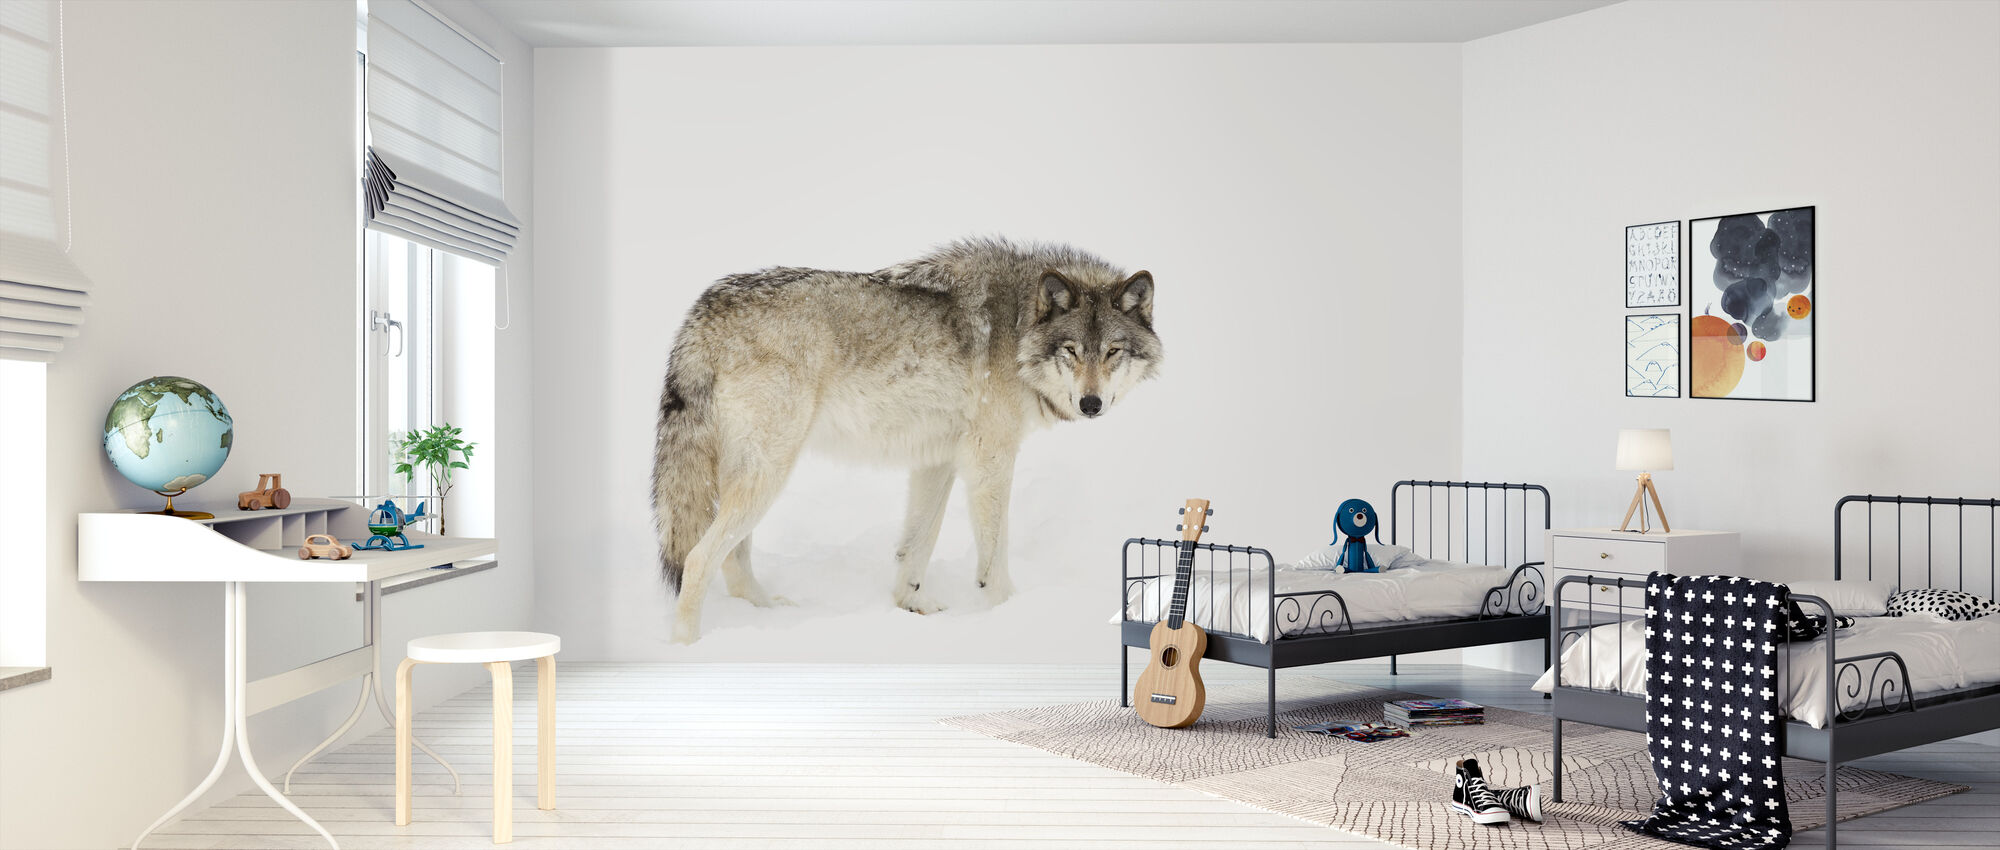 Canadian Timber Wolf Walking Through The Snow - Wallpaper - Kids Room